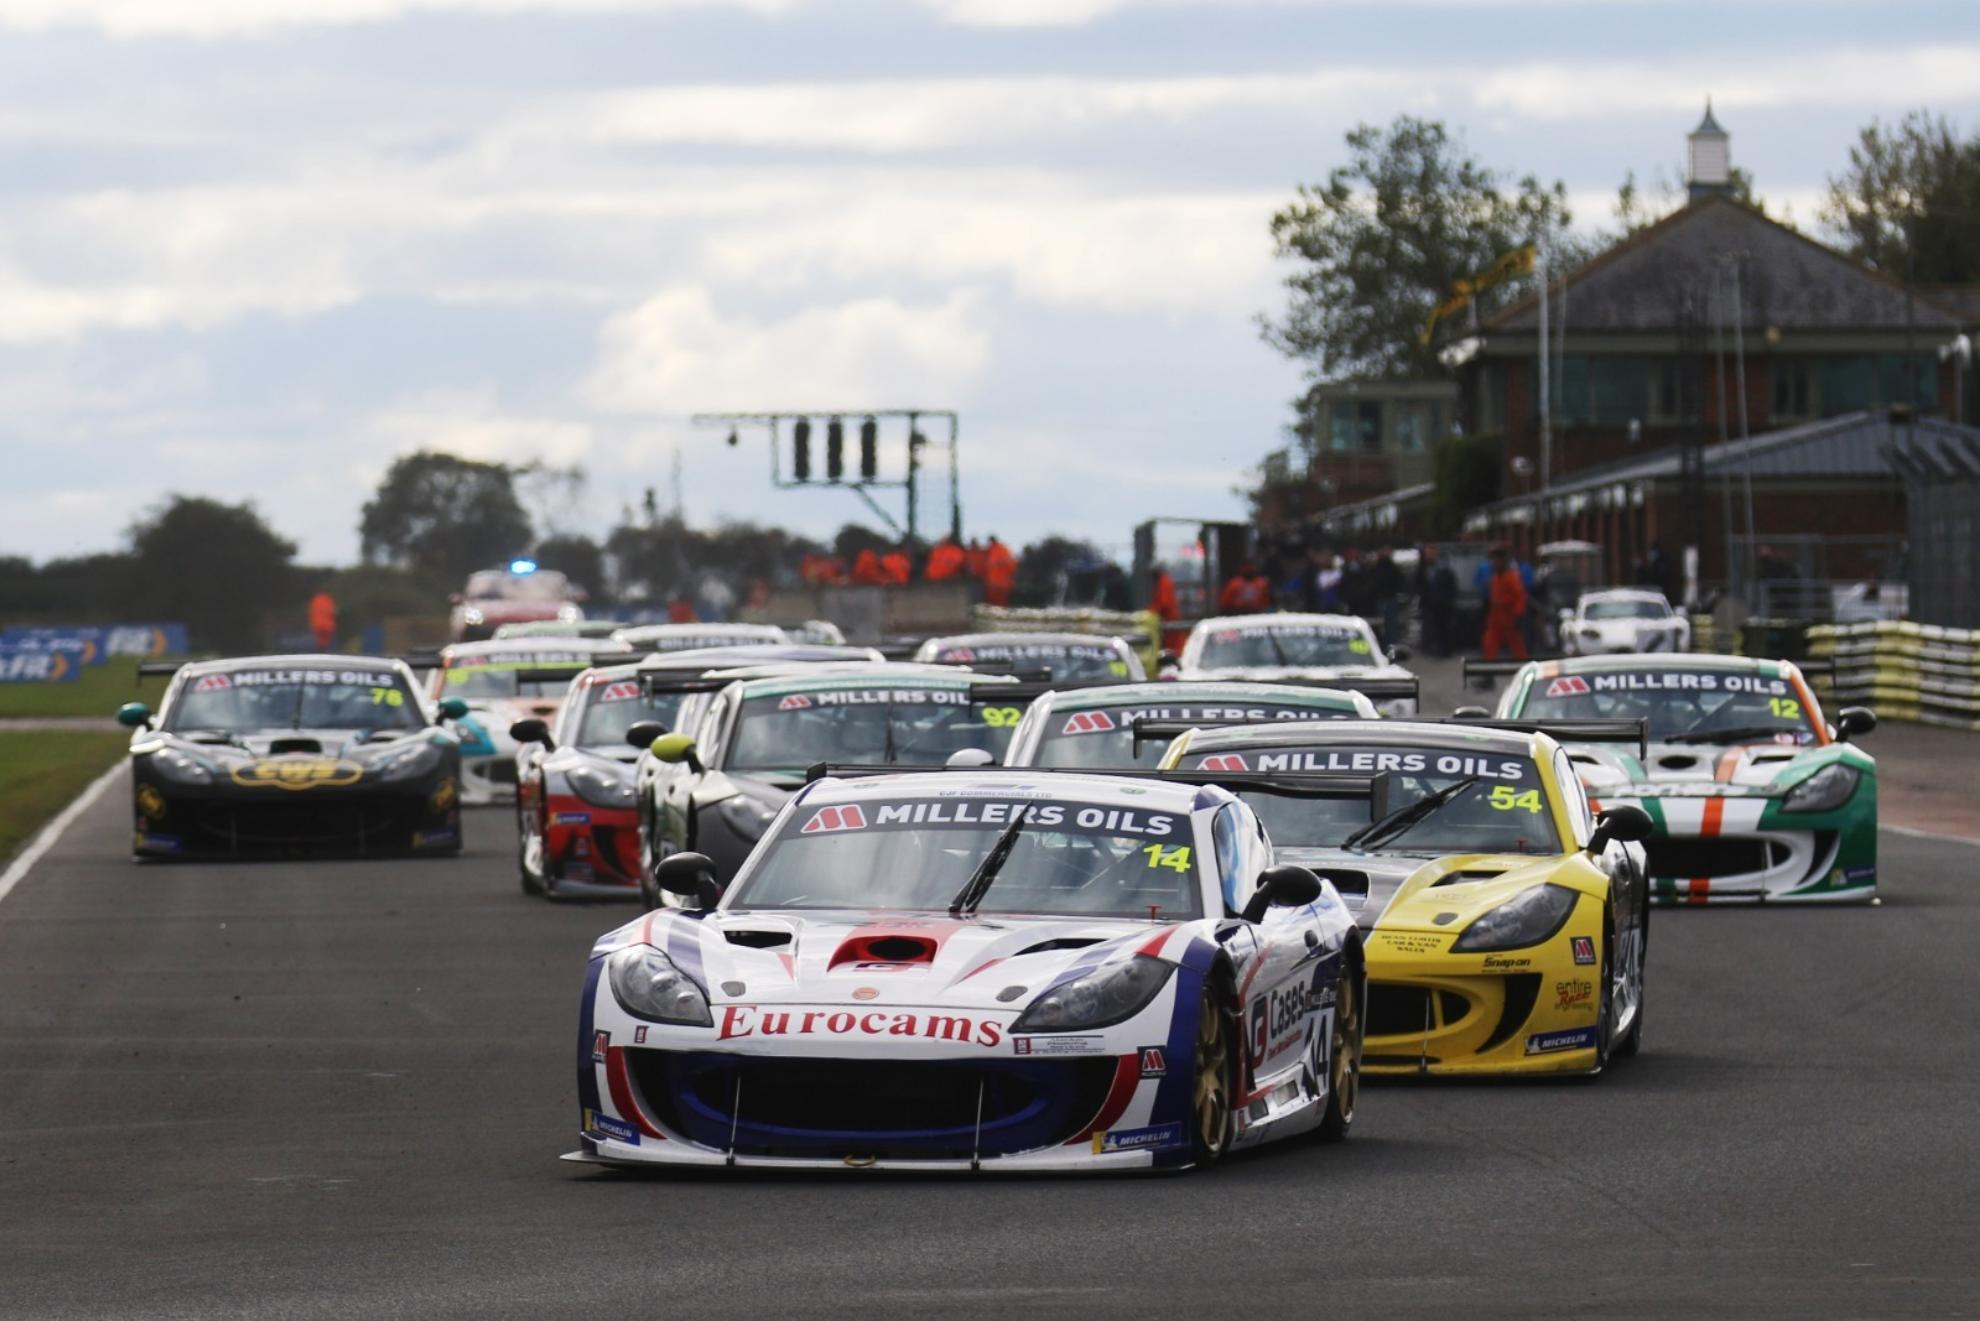 Burns Takes Championship Lead With Croft Victories